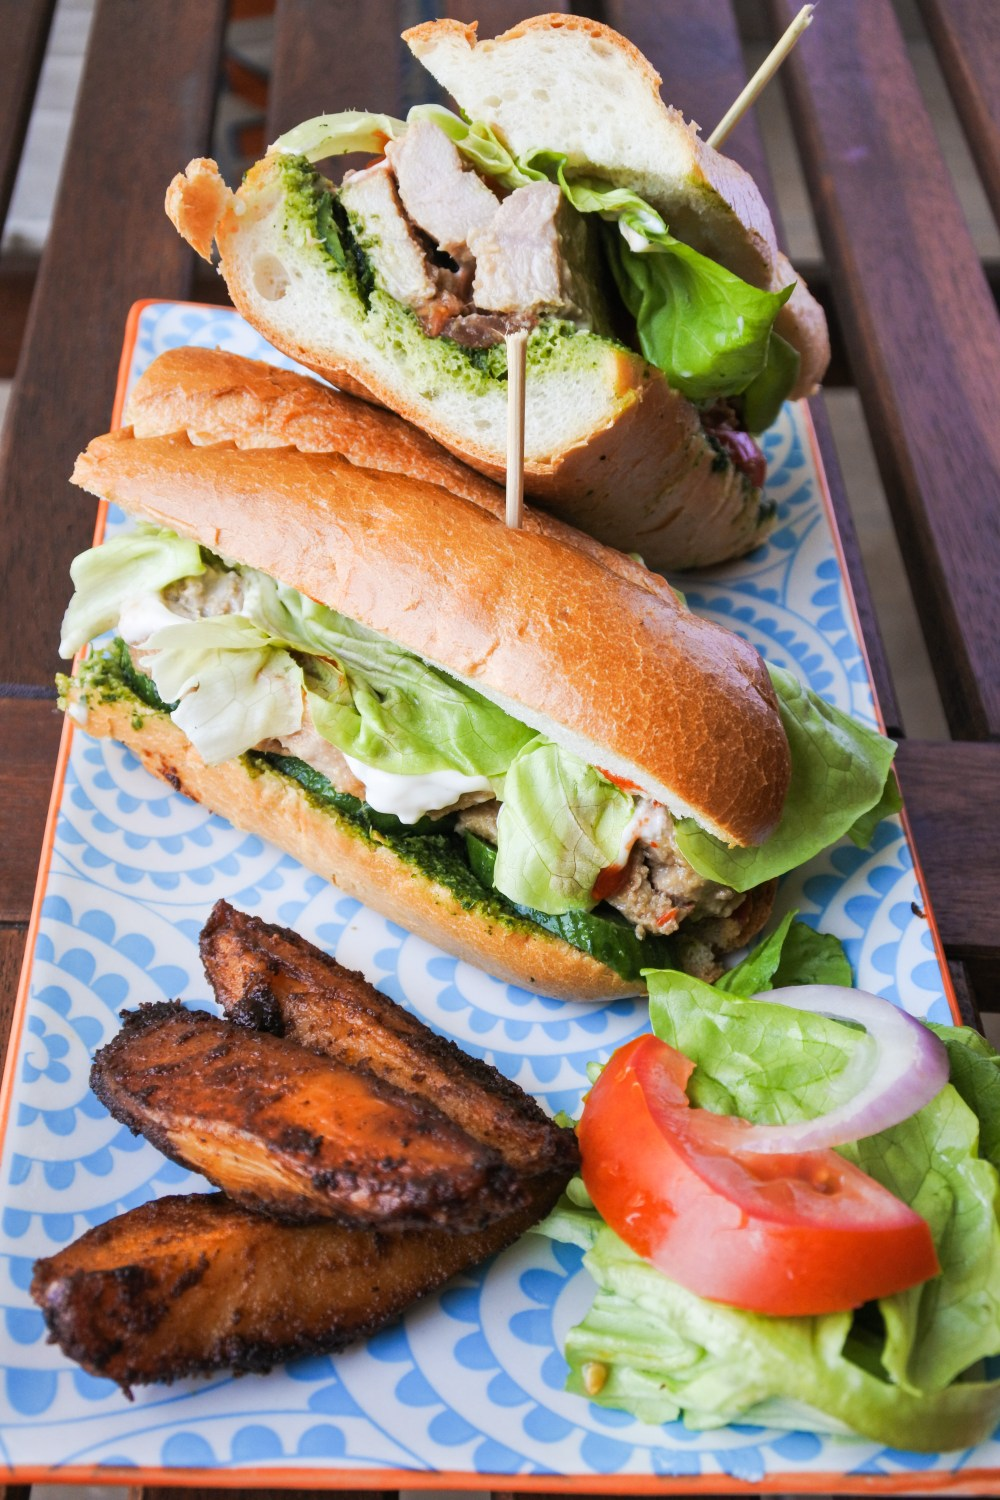 Pork Banh Mi with seasoned oven wedges and veg on plate